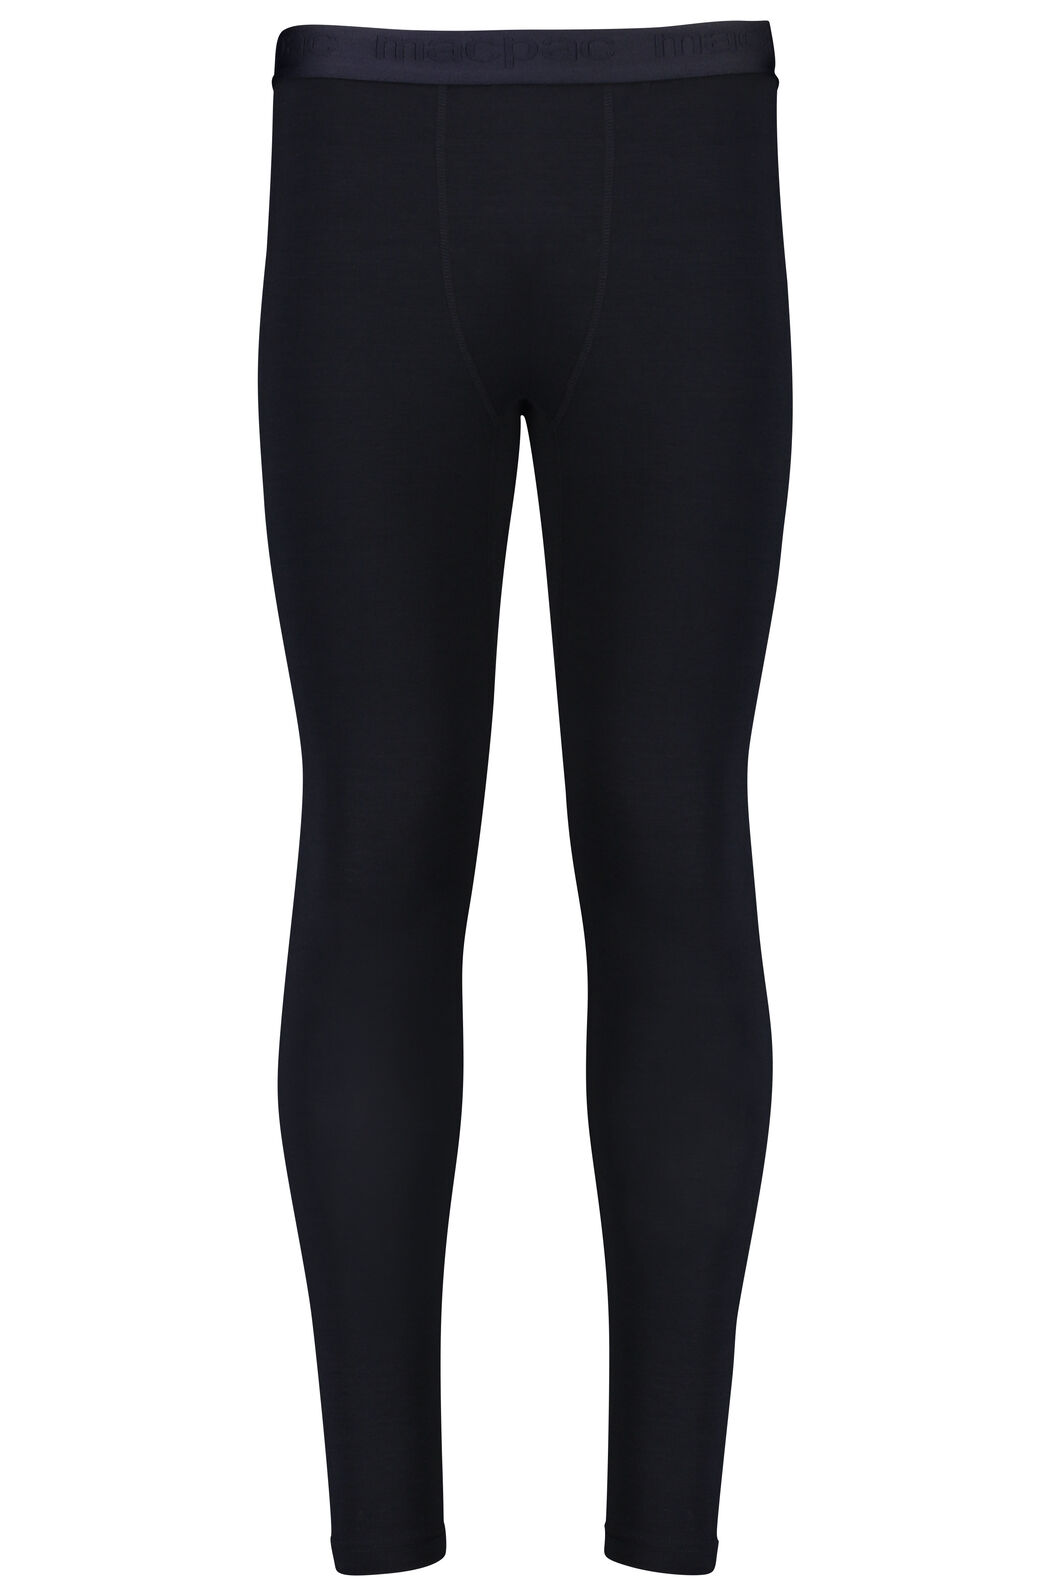 Macpac 180 Merino Long Johns — Men's, Black, hi-res